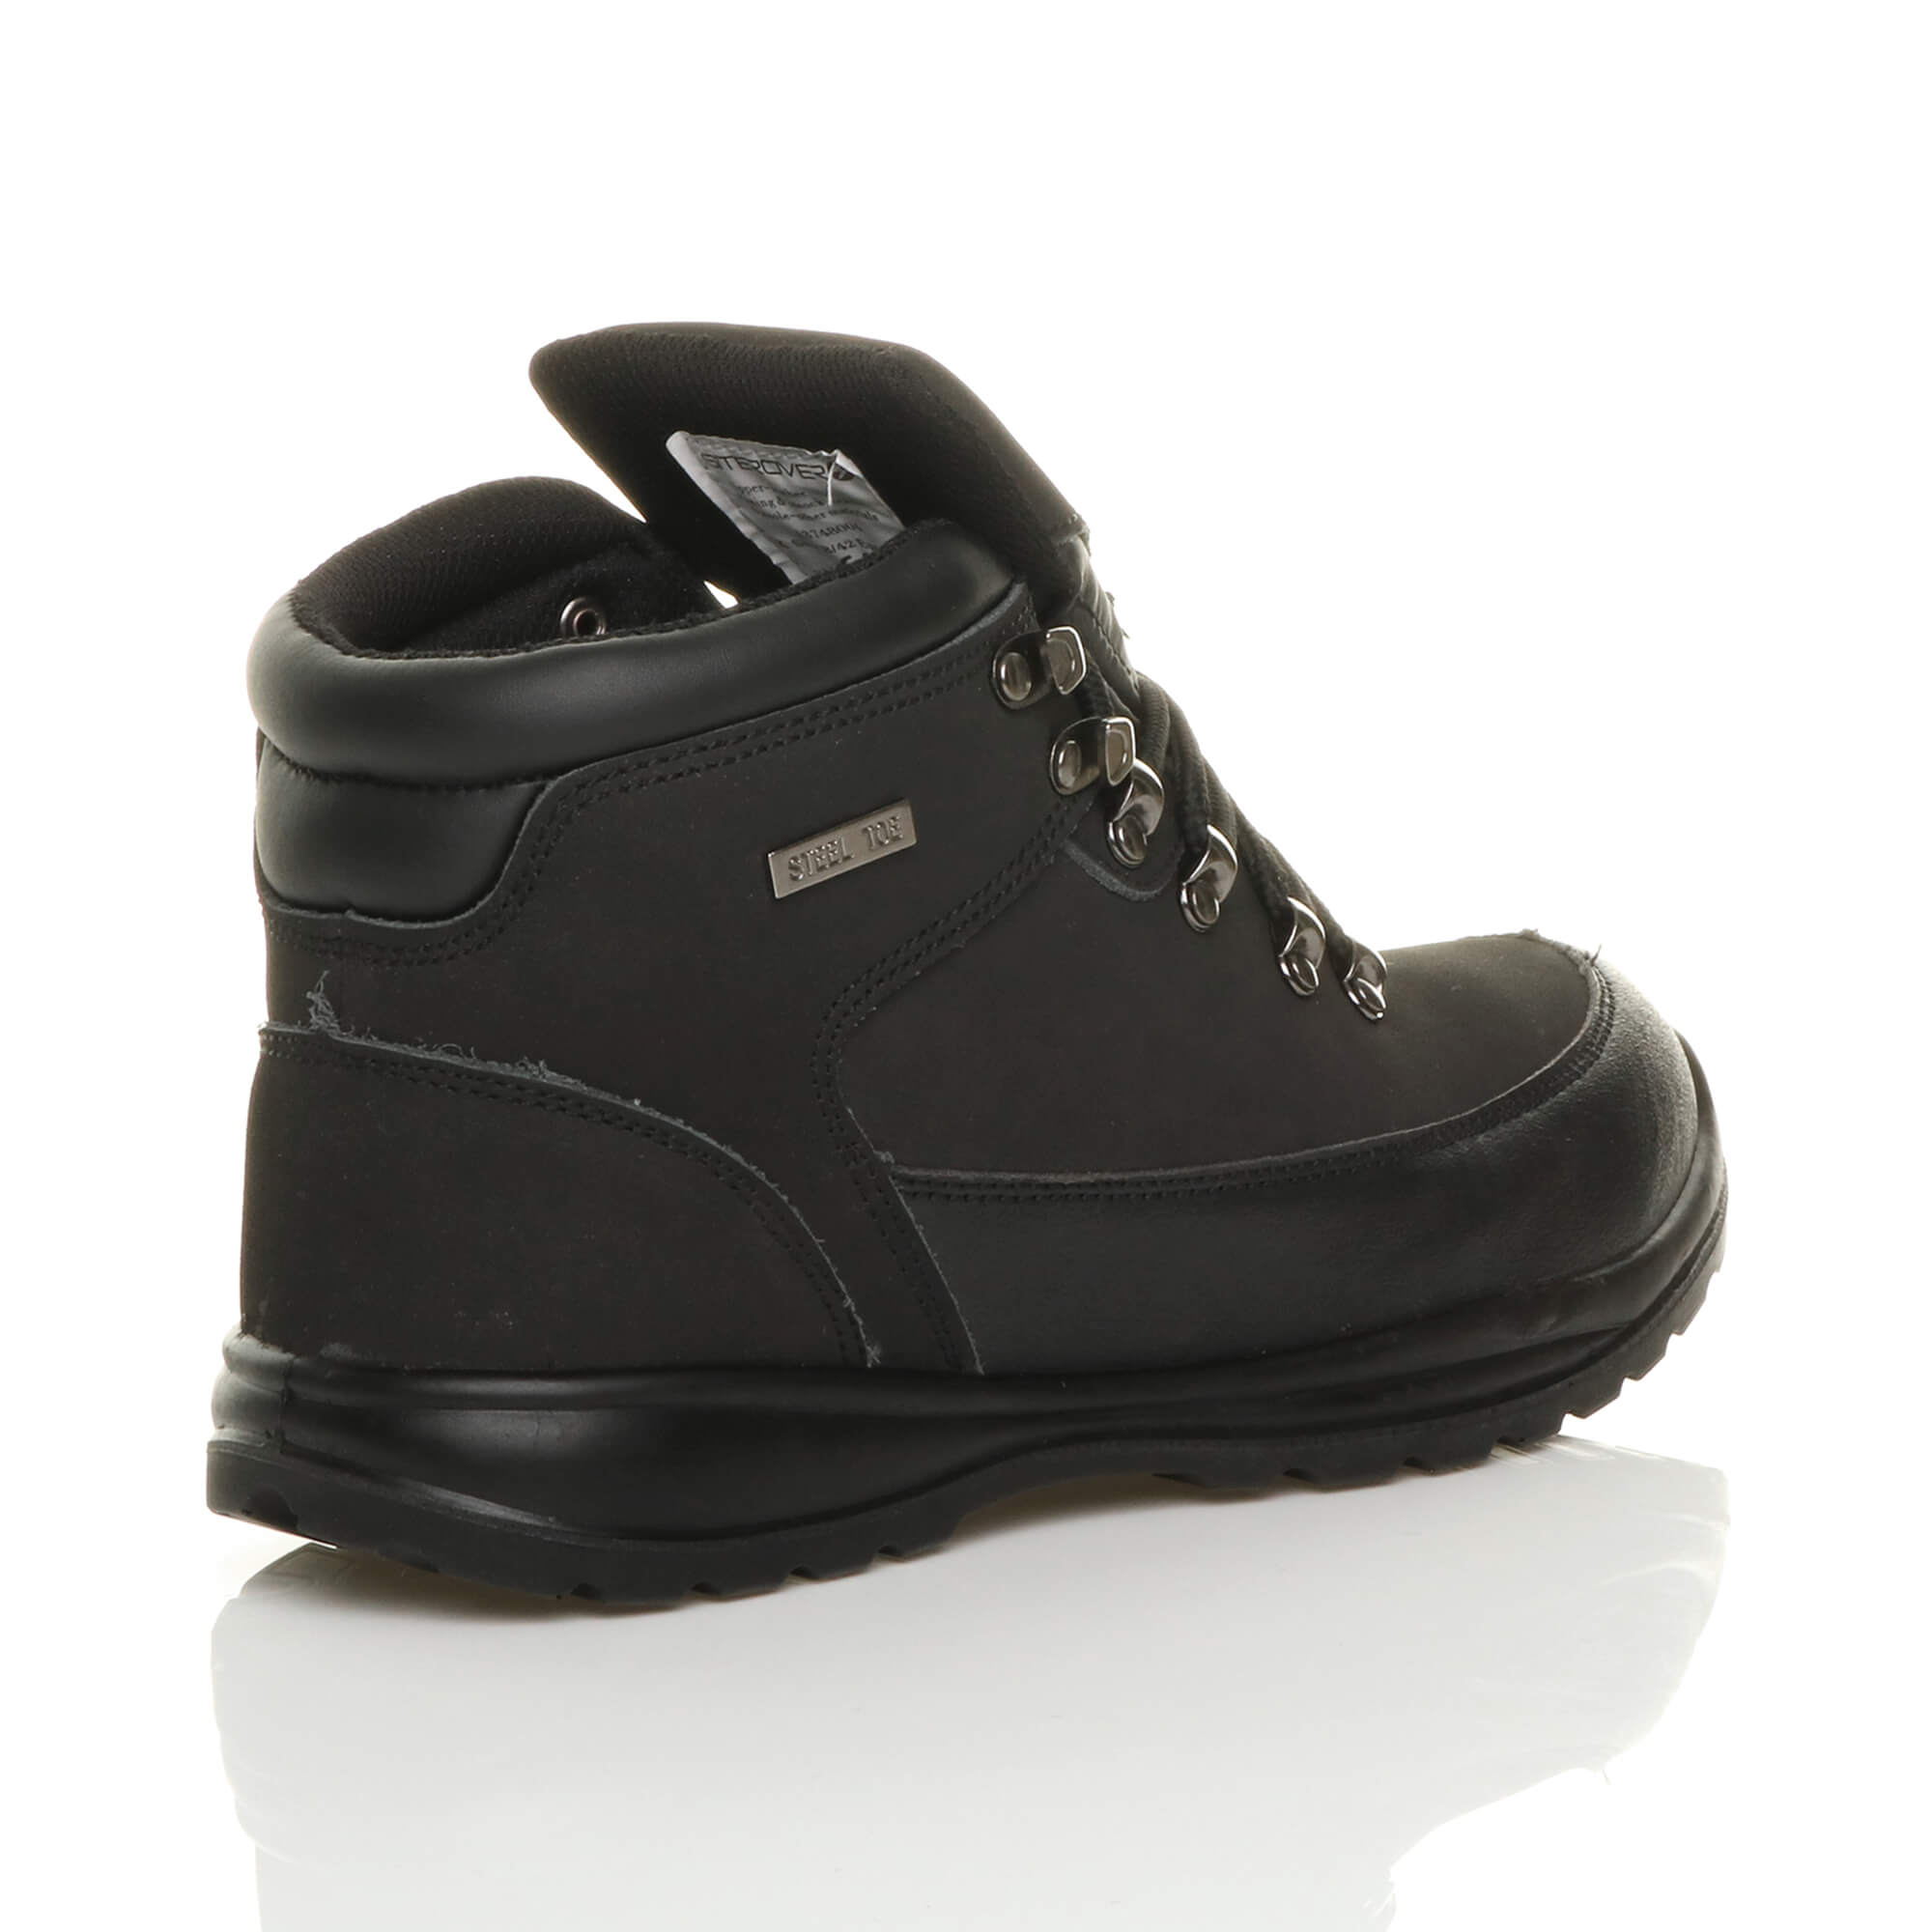 MENS-FLAT-LOW-HEEL-LACE-UP-STEEL-MIDSOLE-TOE-CAP-WORK-SAFETY-ANKLE-BOOTS-SIZE